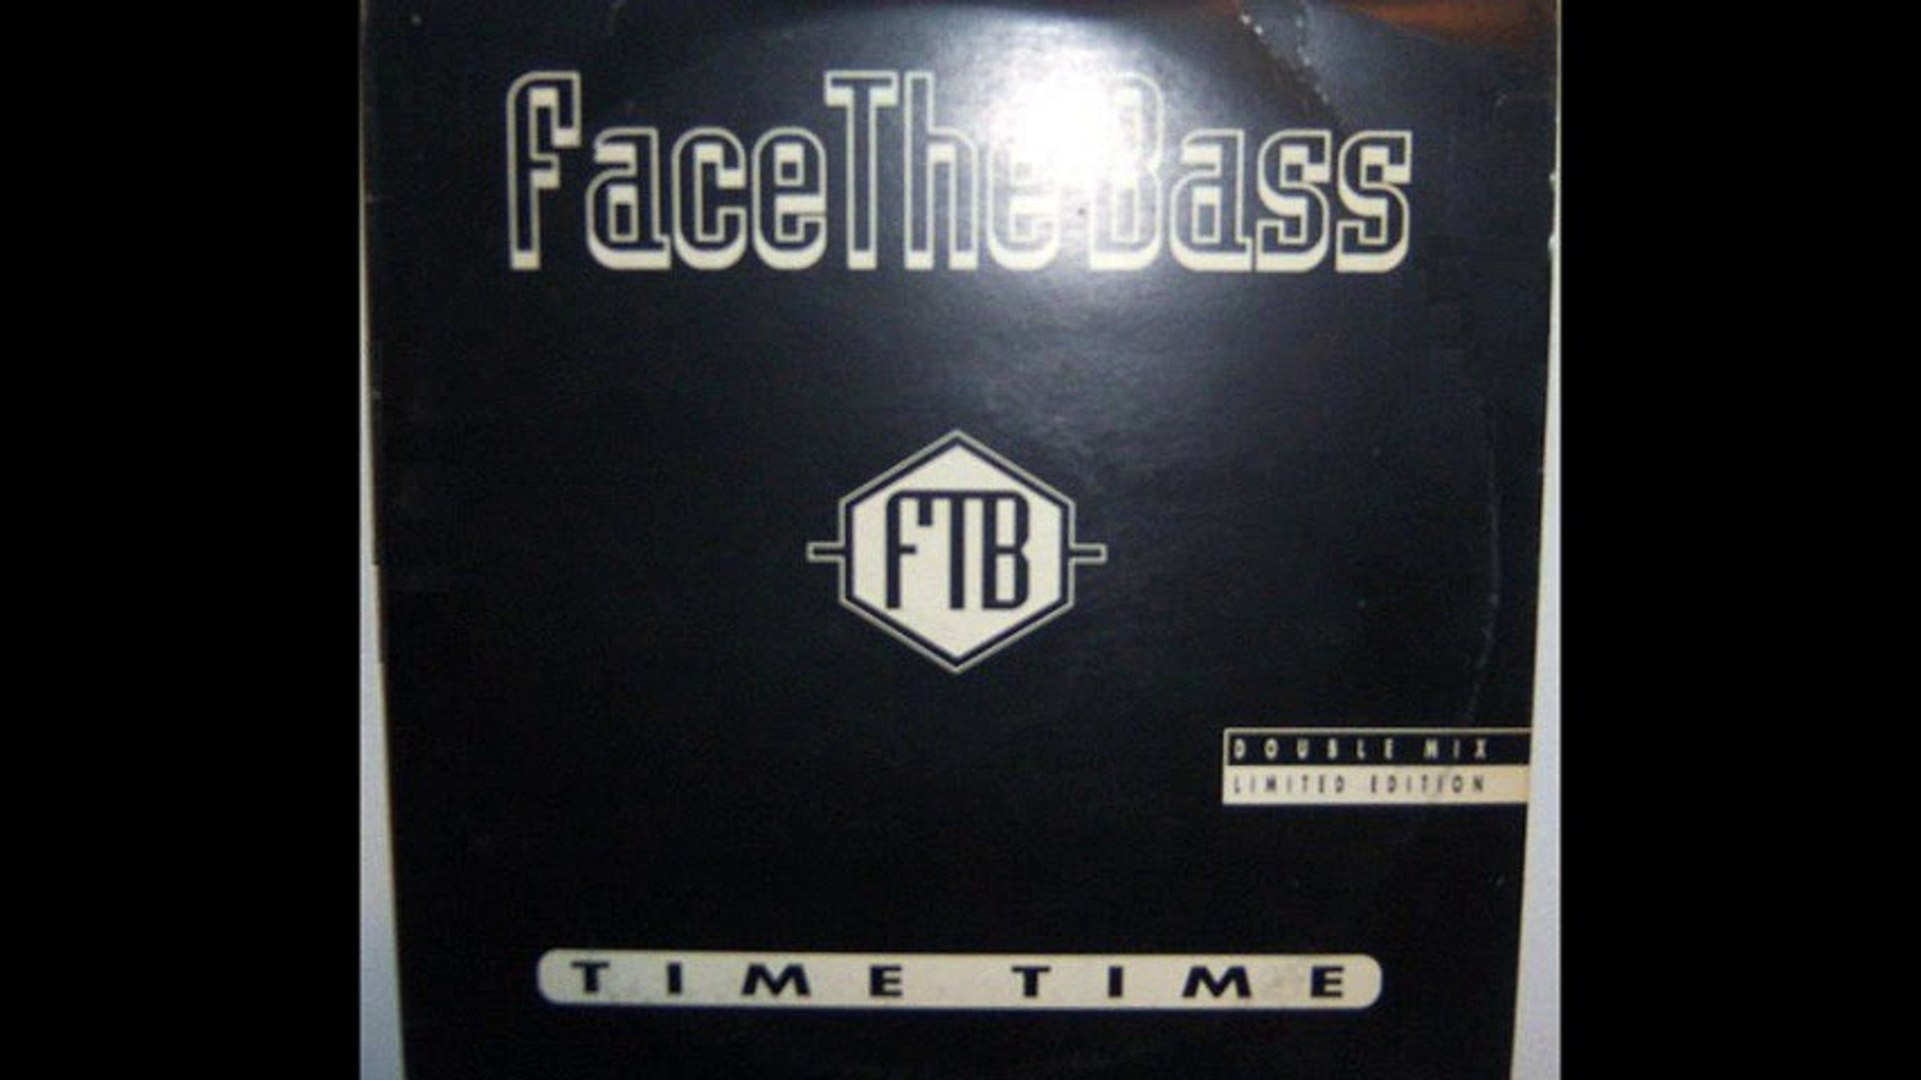 Face The Bass - Time Time (Bass Mix) (A)